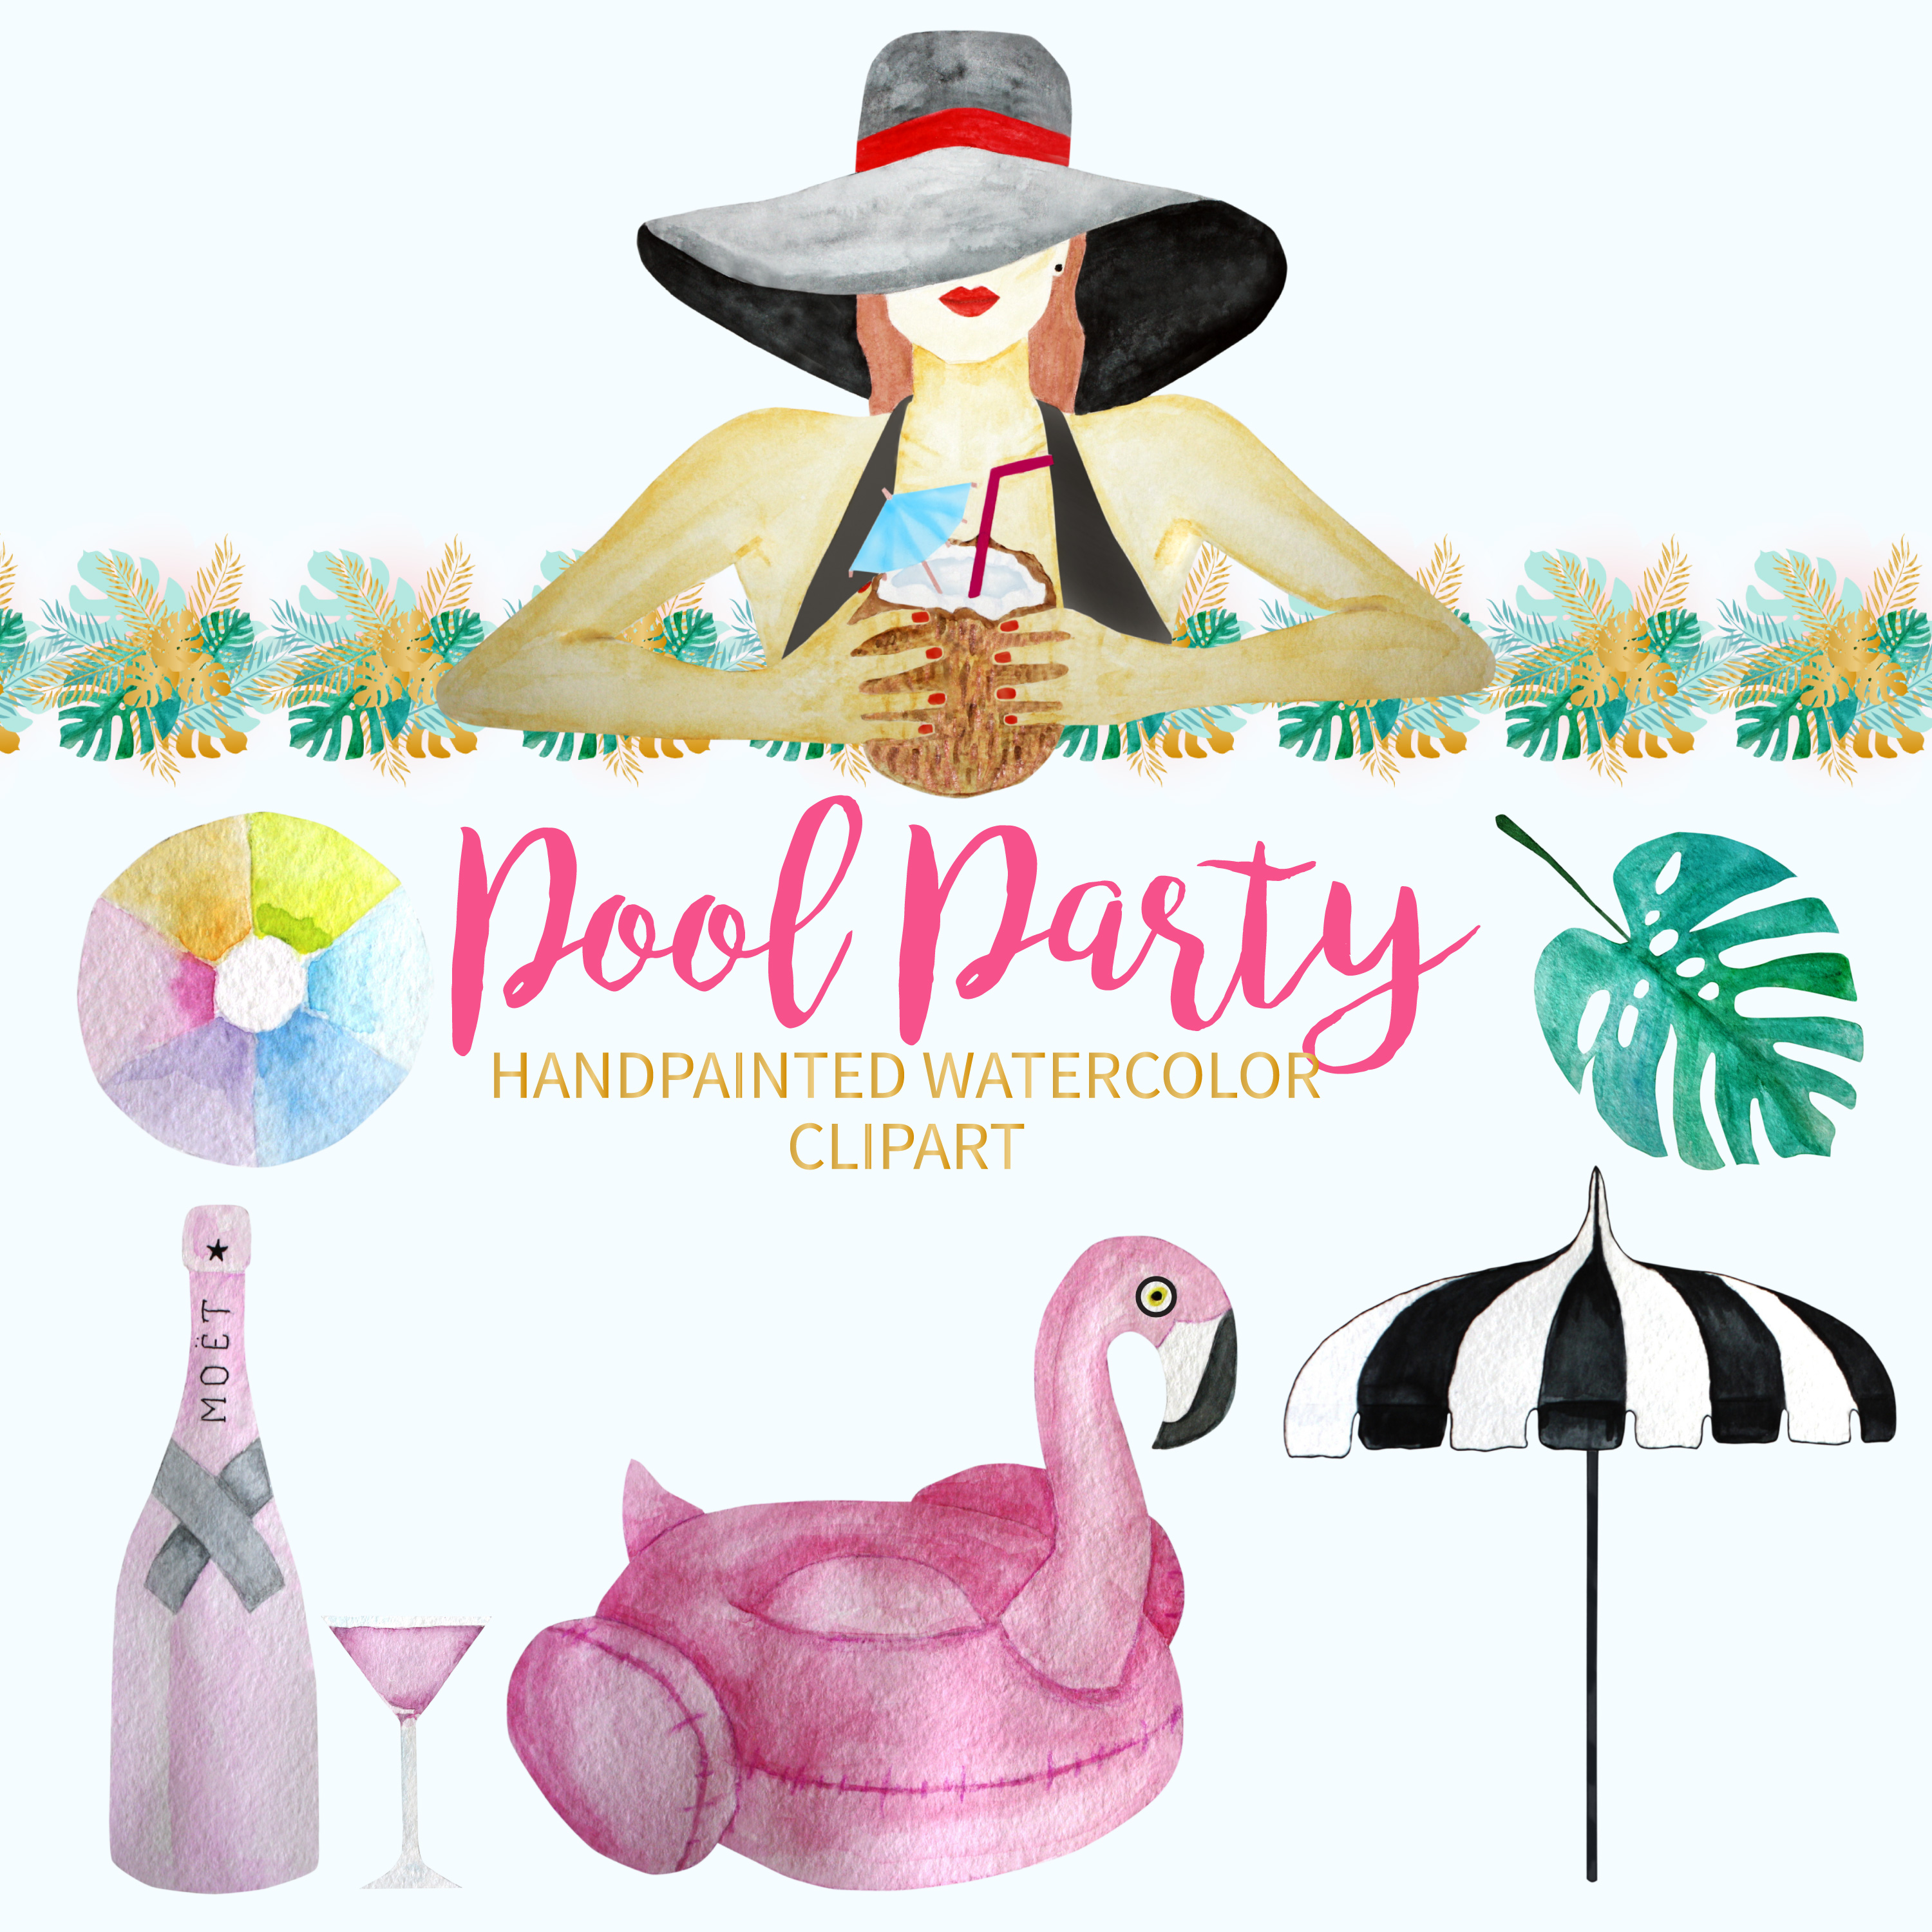 Pool Party Watercolor Clipart example image 3